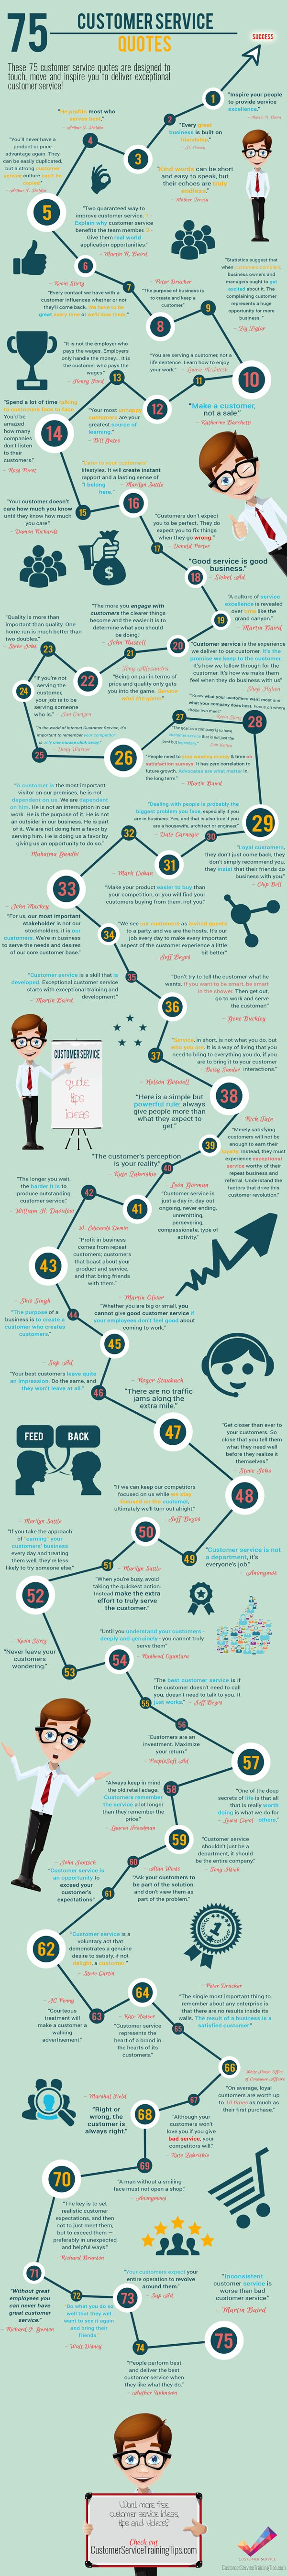 """#WHATIFWEDNESDAY What if you had a list or infographic that had 75 Customer Service Quotes on it? Now you do take a look from ShortStack. I like this one: """"In the world of internet customer service, it's important to remember your competitor is only one mouse click away.""""~Doug Warner #ShortStack #Social Media"""